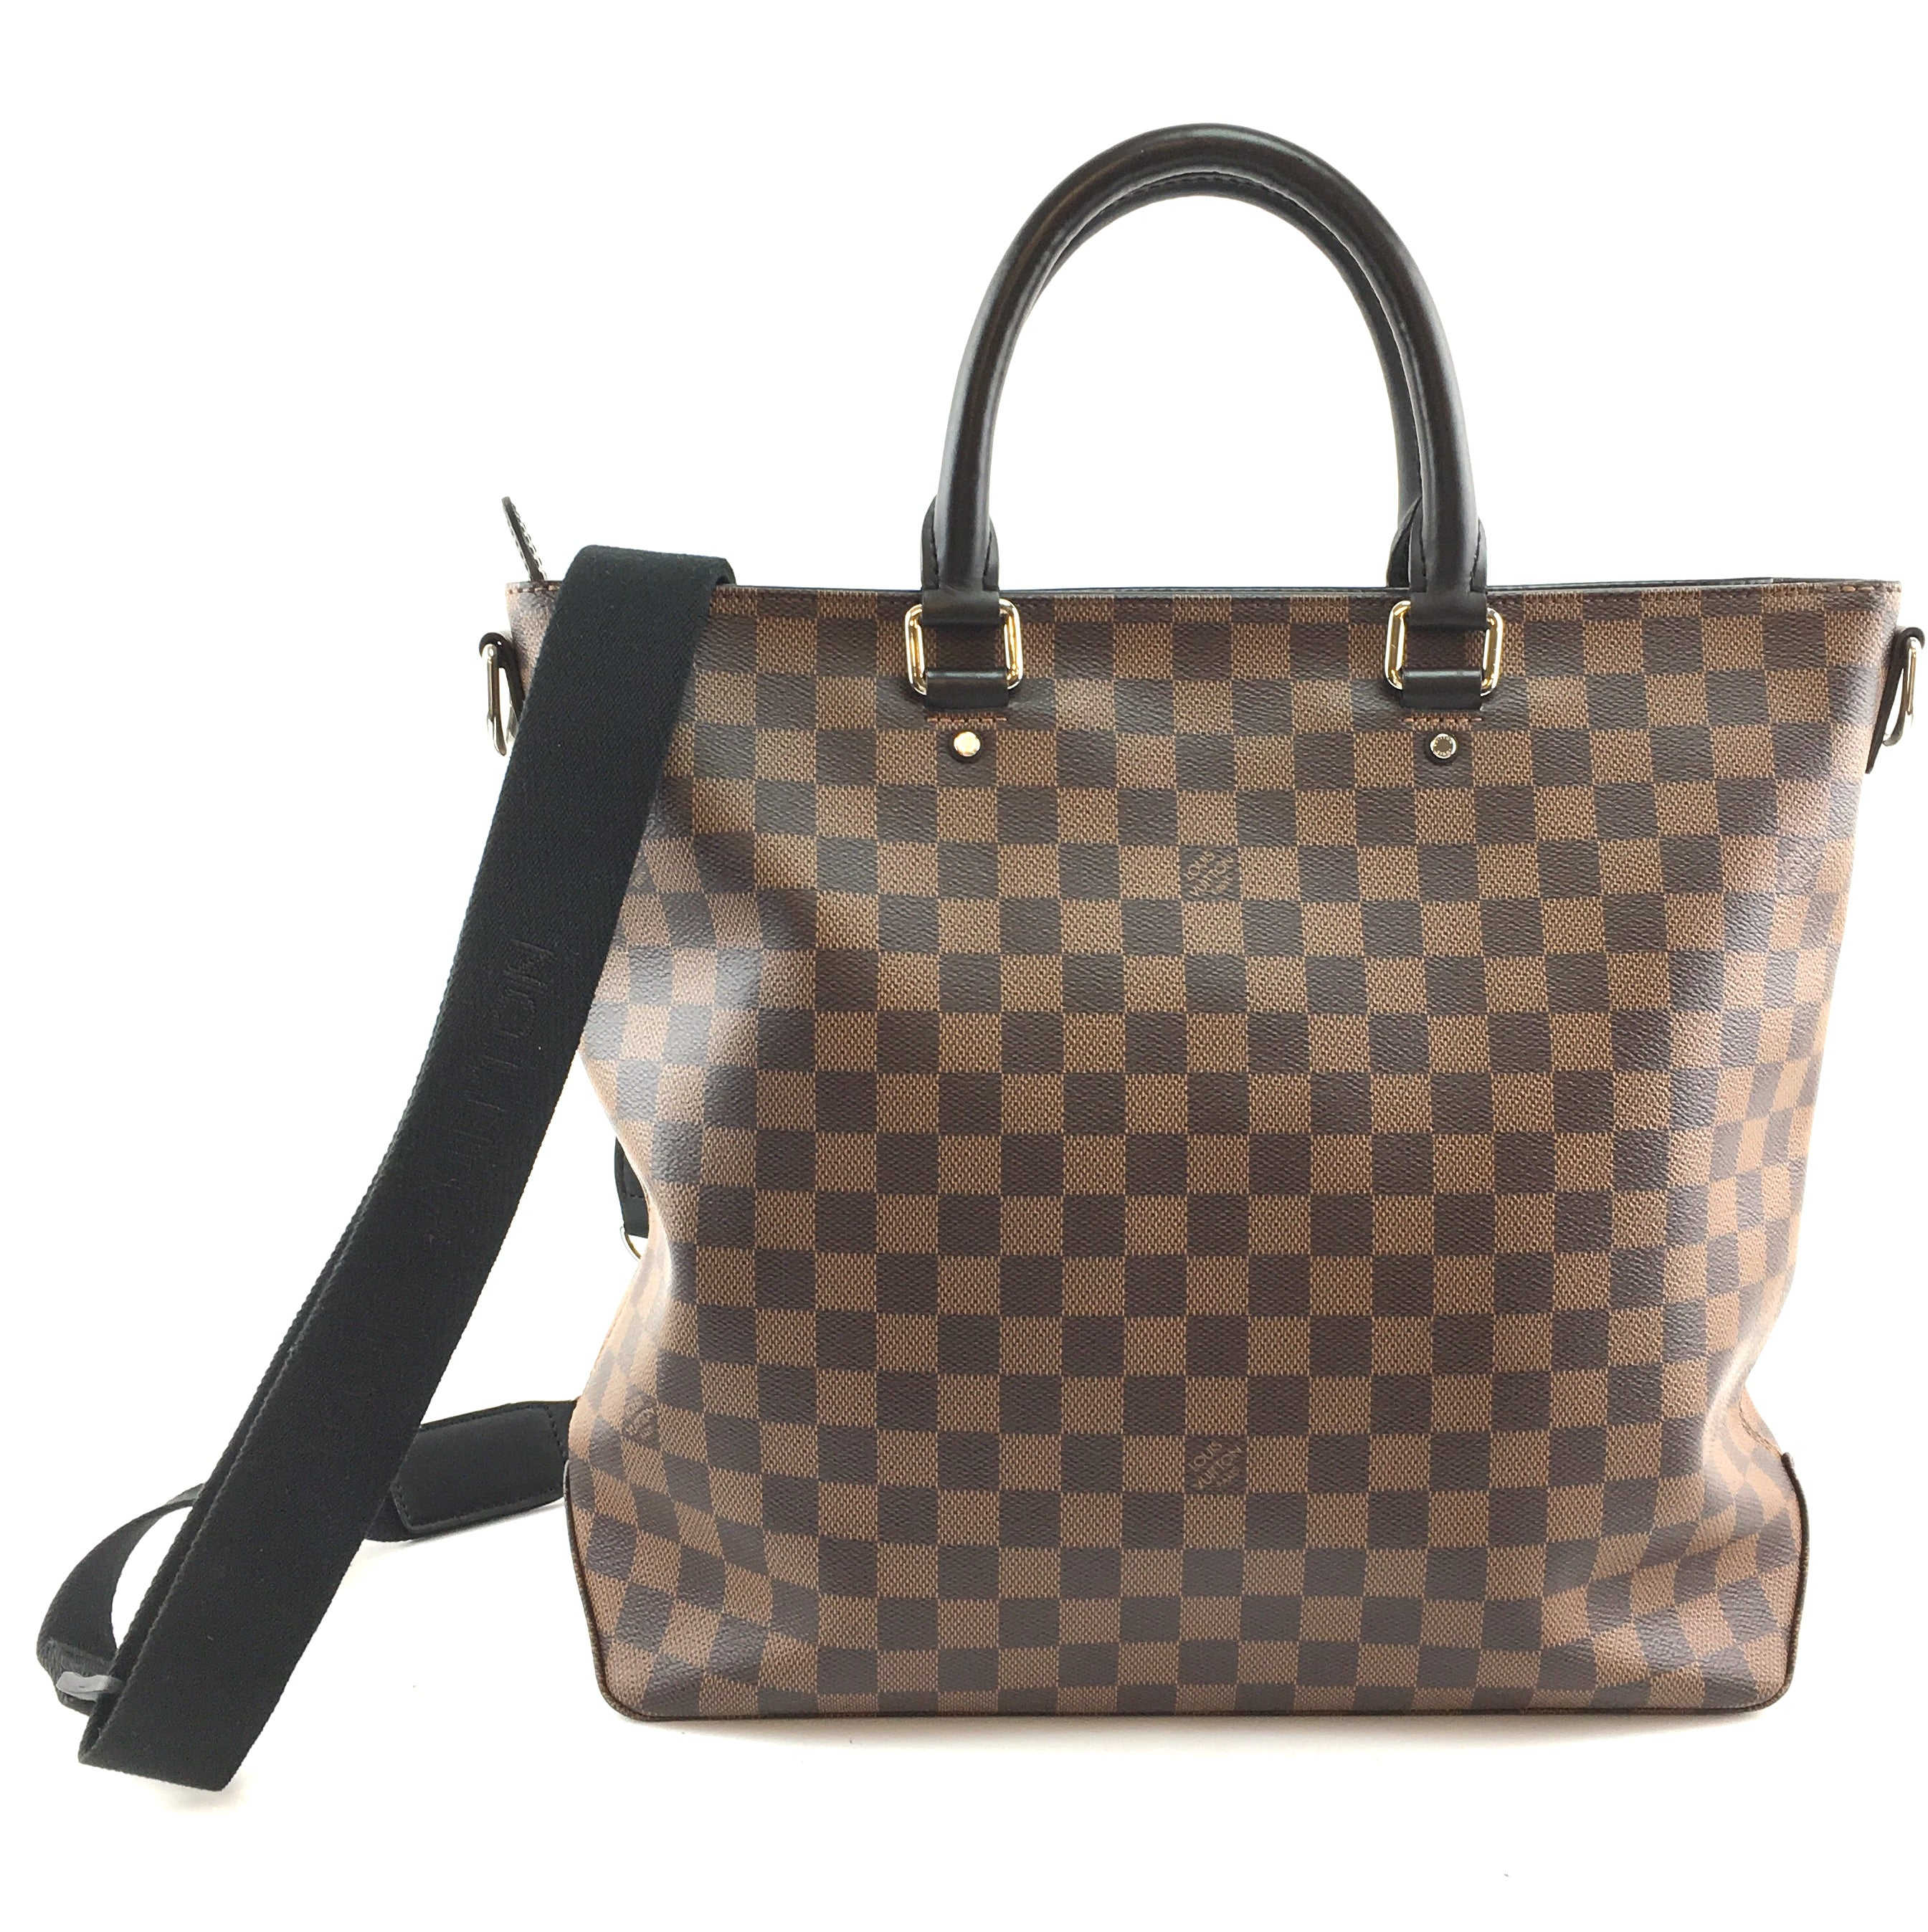 Louis Vuitton Jake with Strap Tote Damier Ébène Canvas